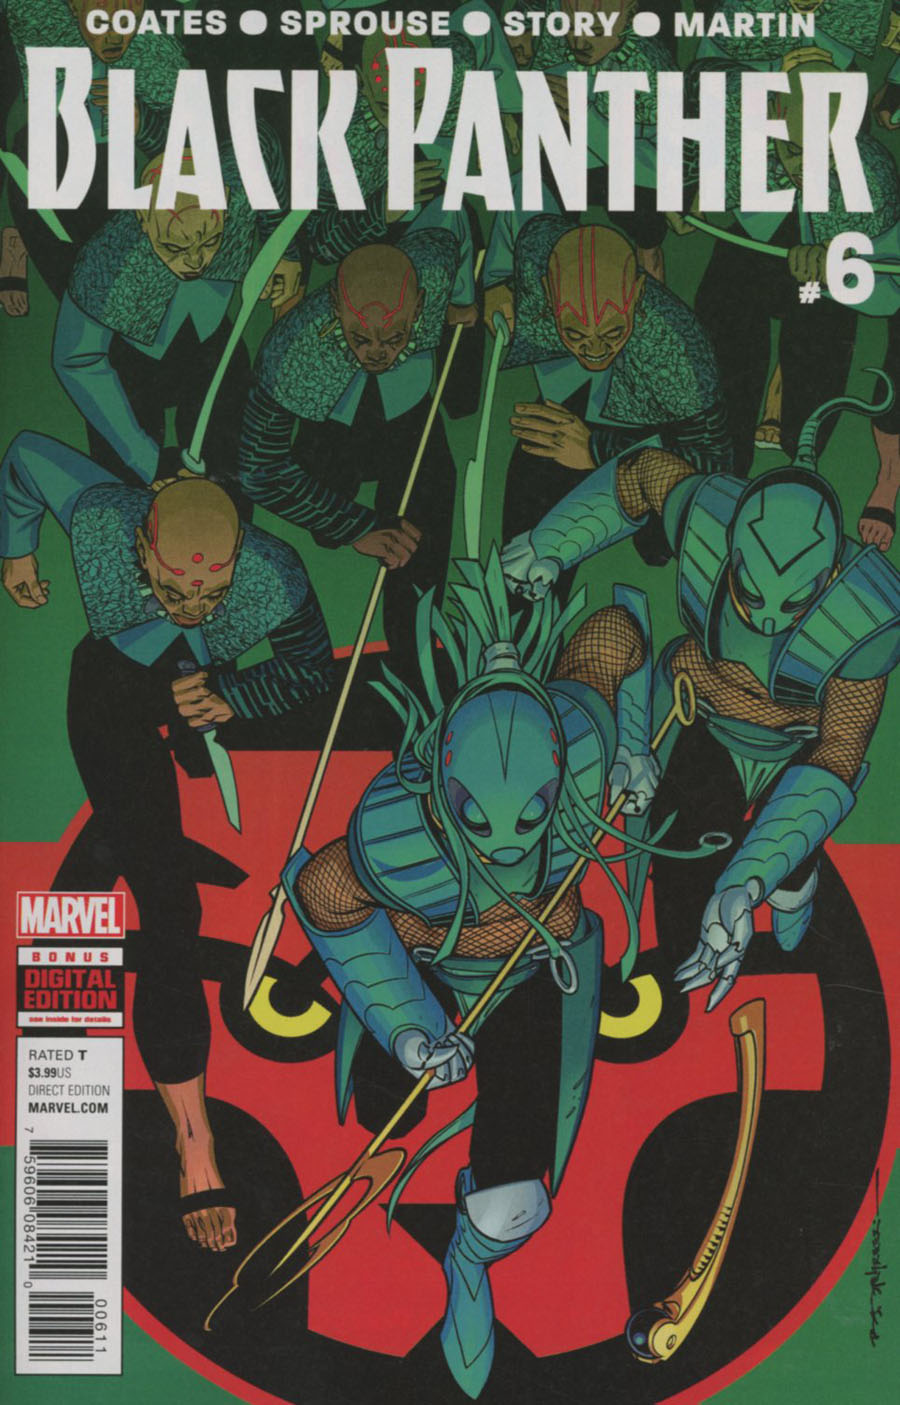 Black Panther Vol 6 #6 Cover A Regular Brian Stelfreeze Cover